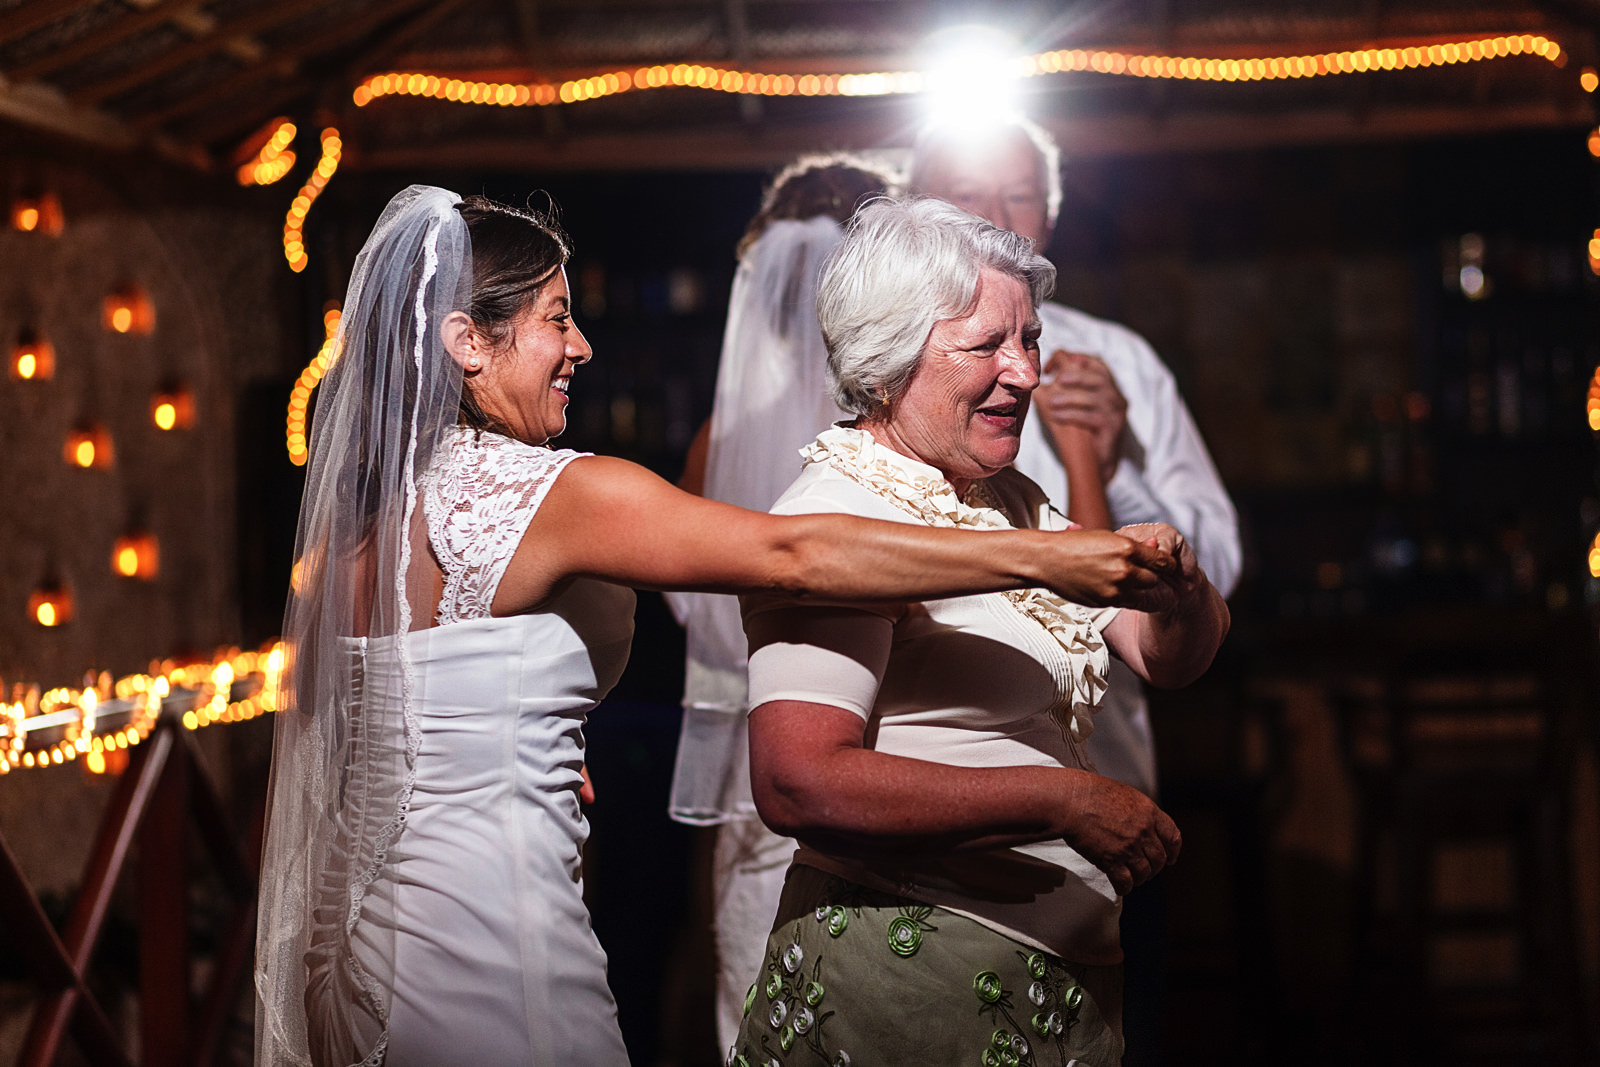 parents_dance_lesbian_wedding_couple